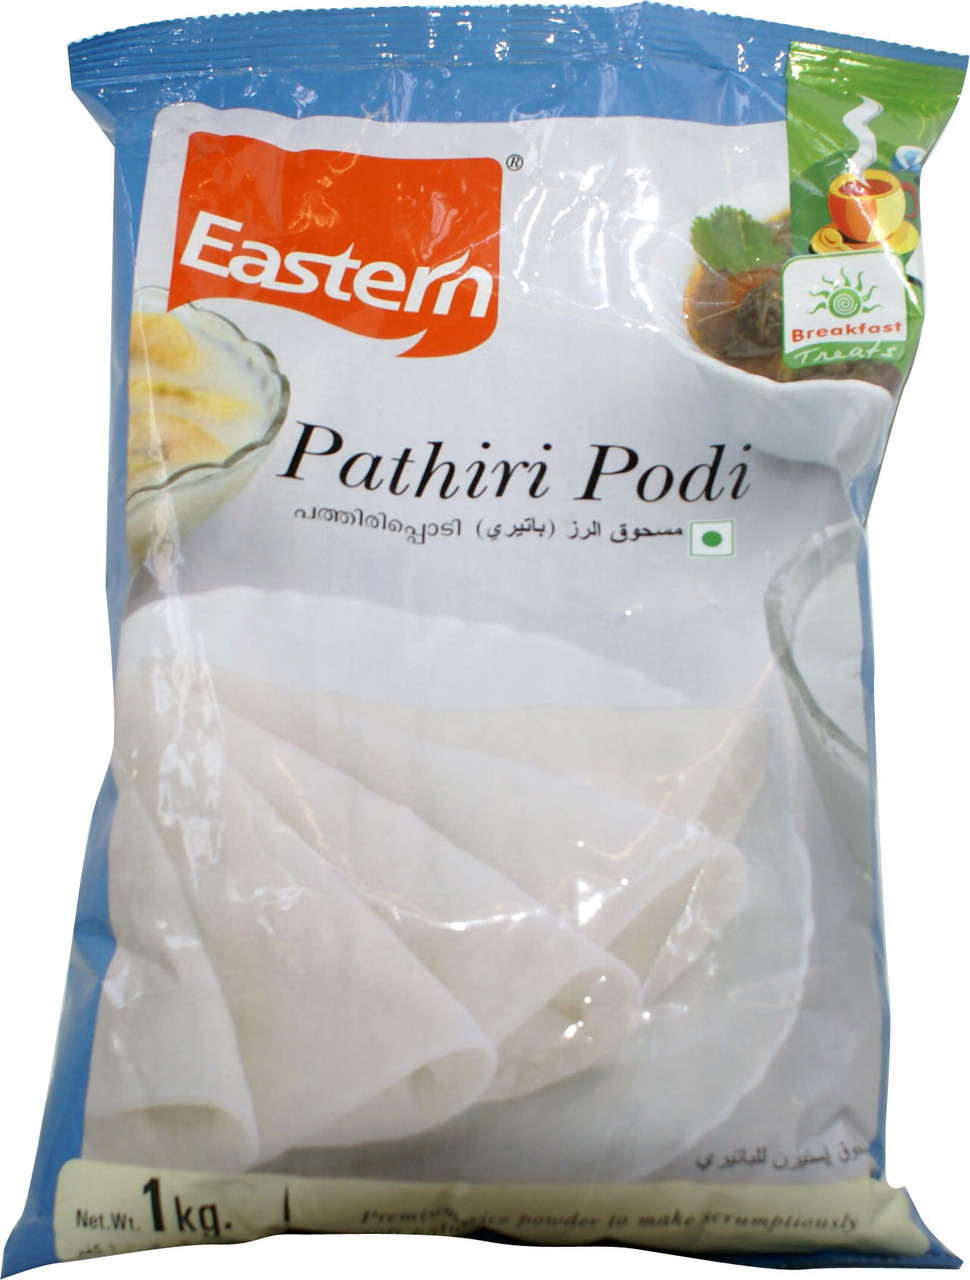 Eastern Pathiri Powder